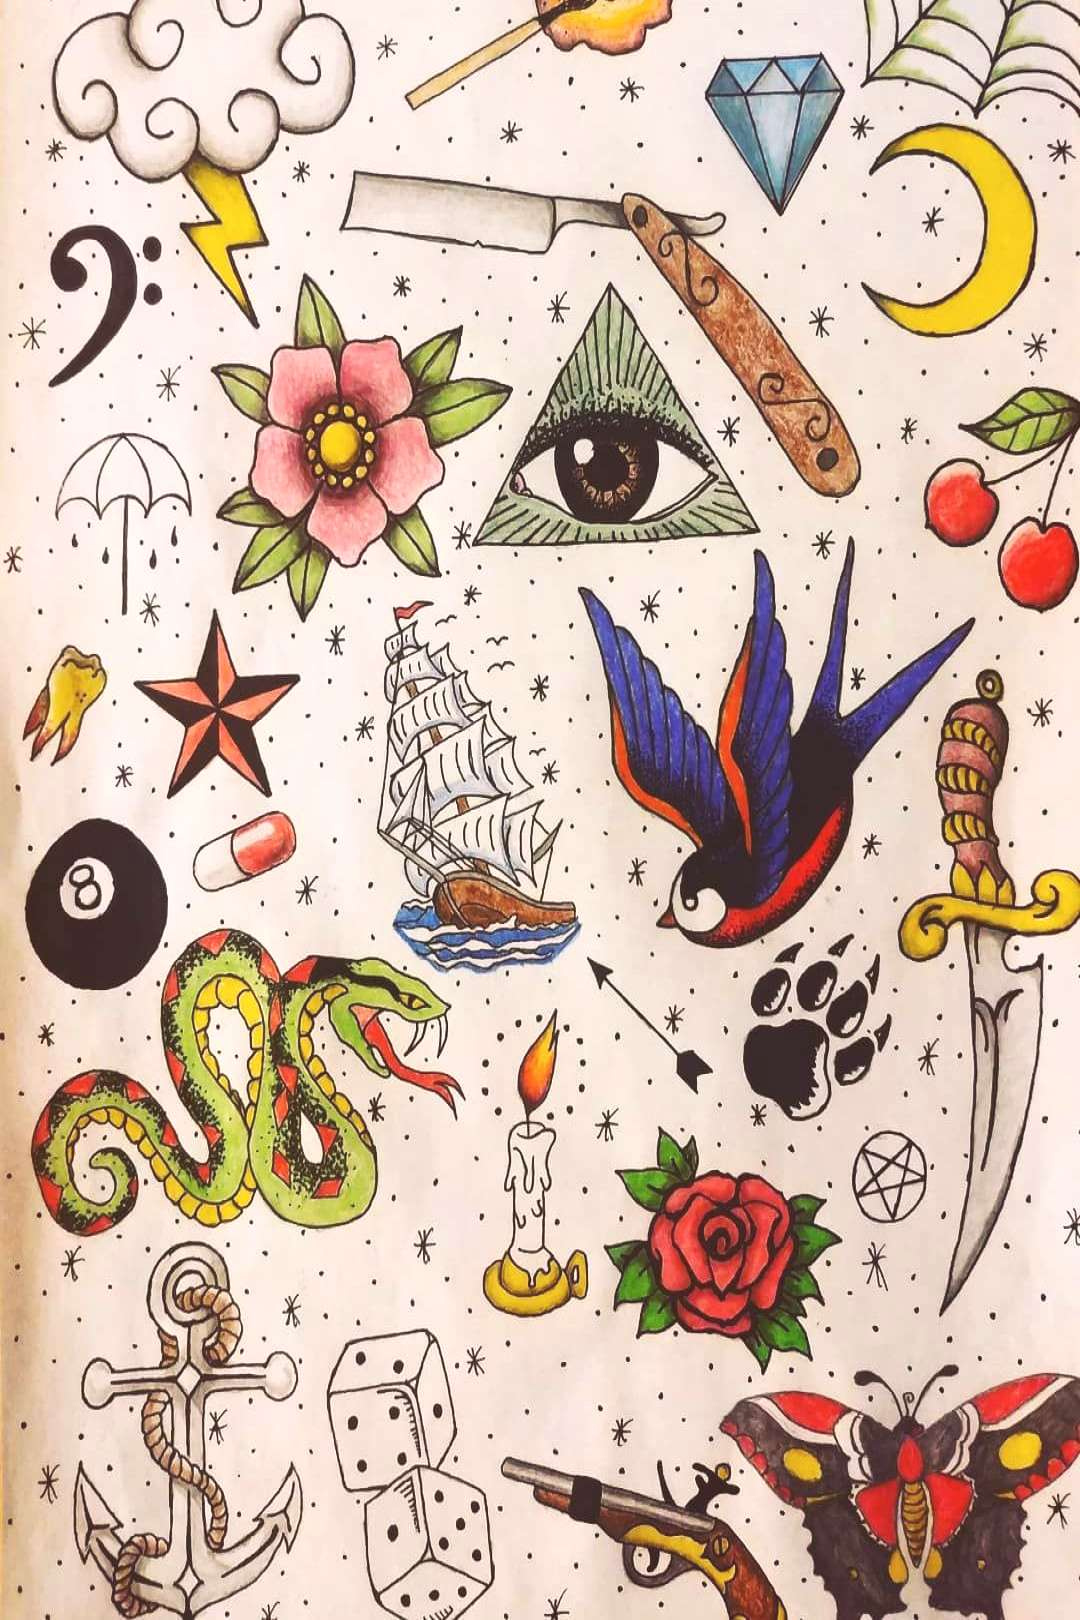 Oldschool tattoo designs. Feel free to use any of these.